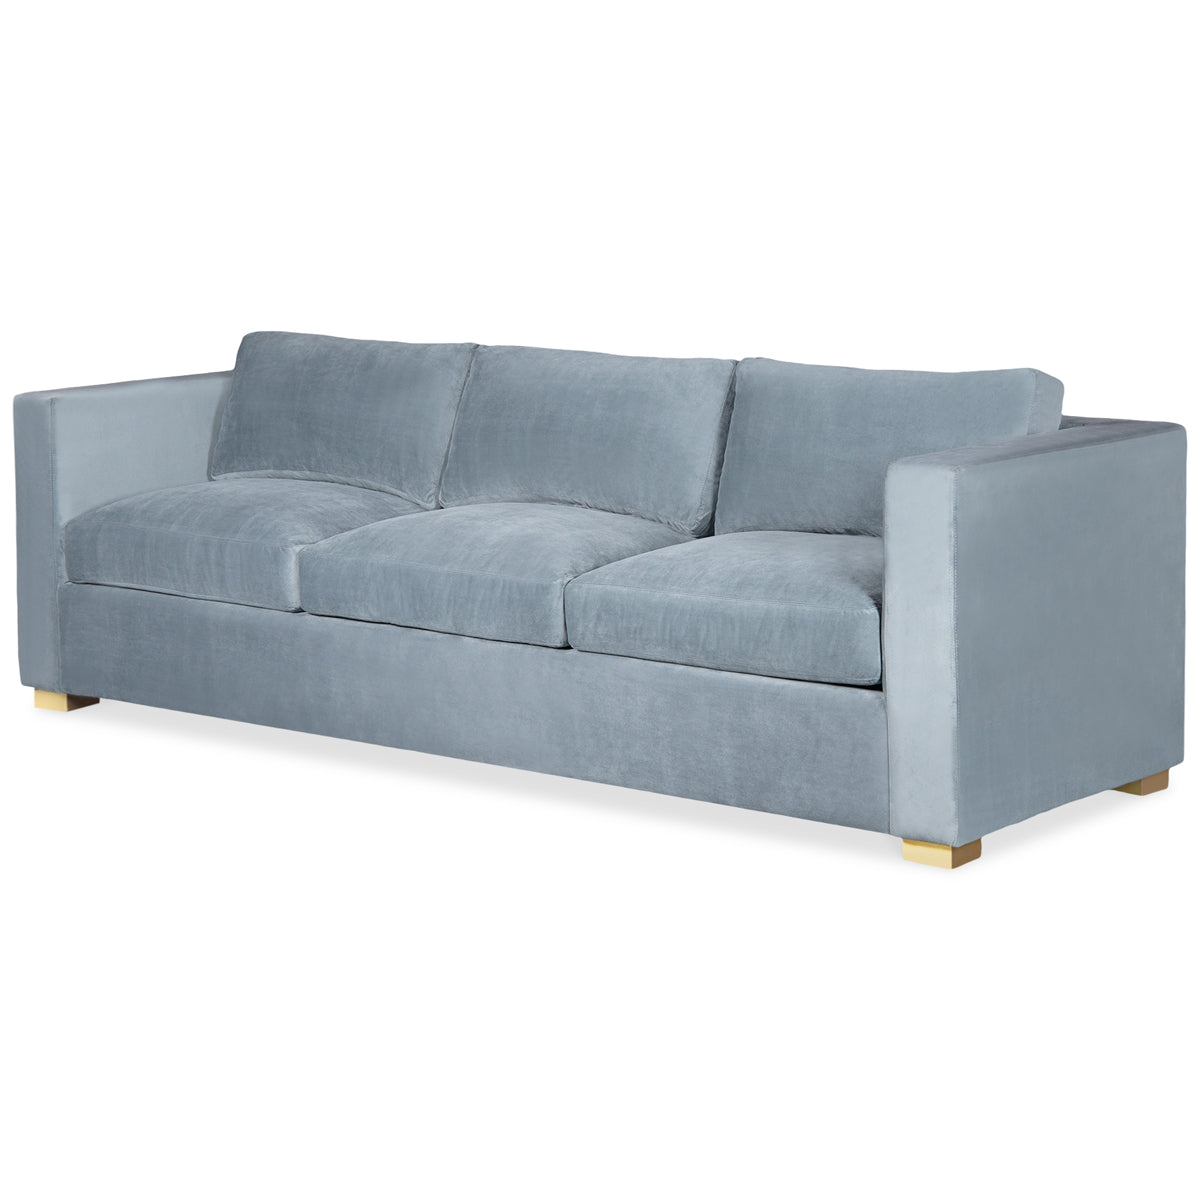 Shoreclub Sofa